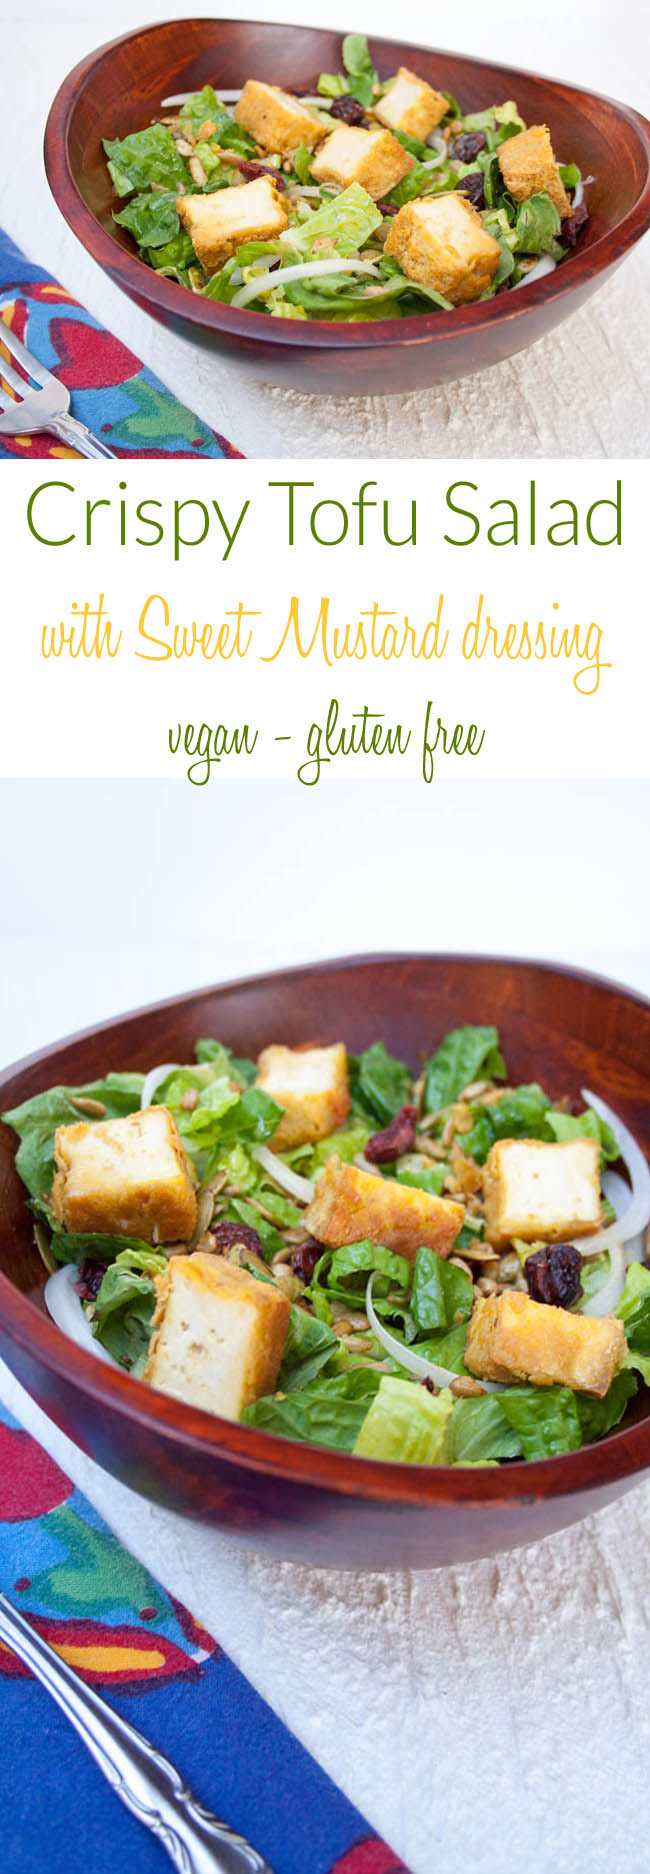 Crispy Tofu Salad with Sweet Mustard Dressing collage photo with text in the middle.